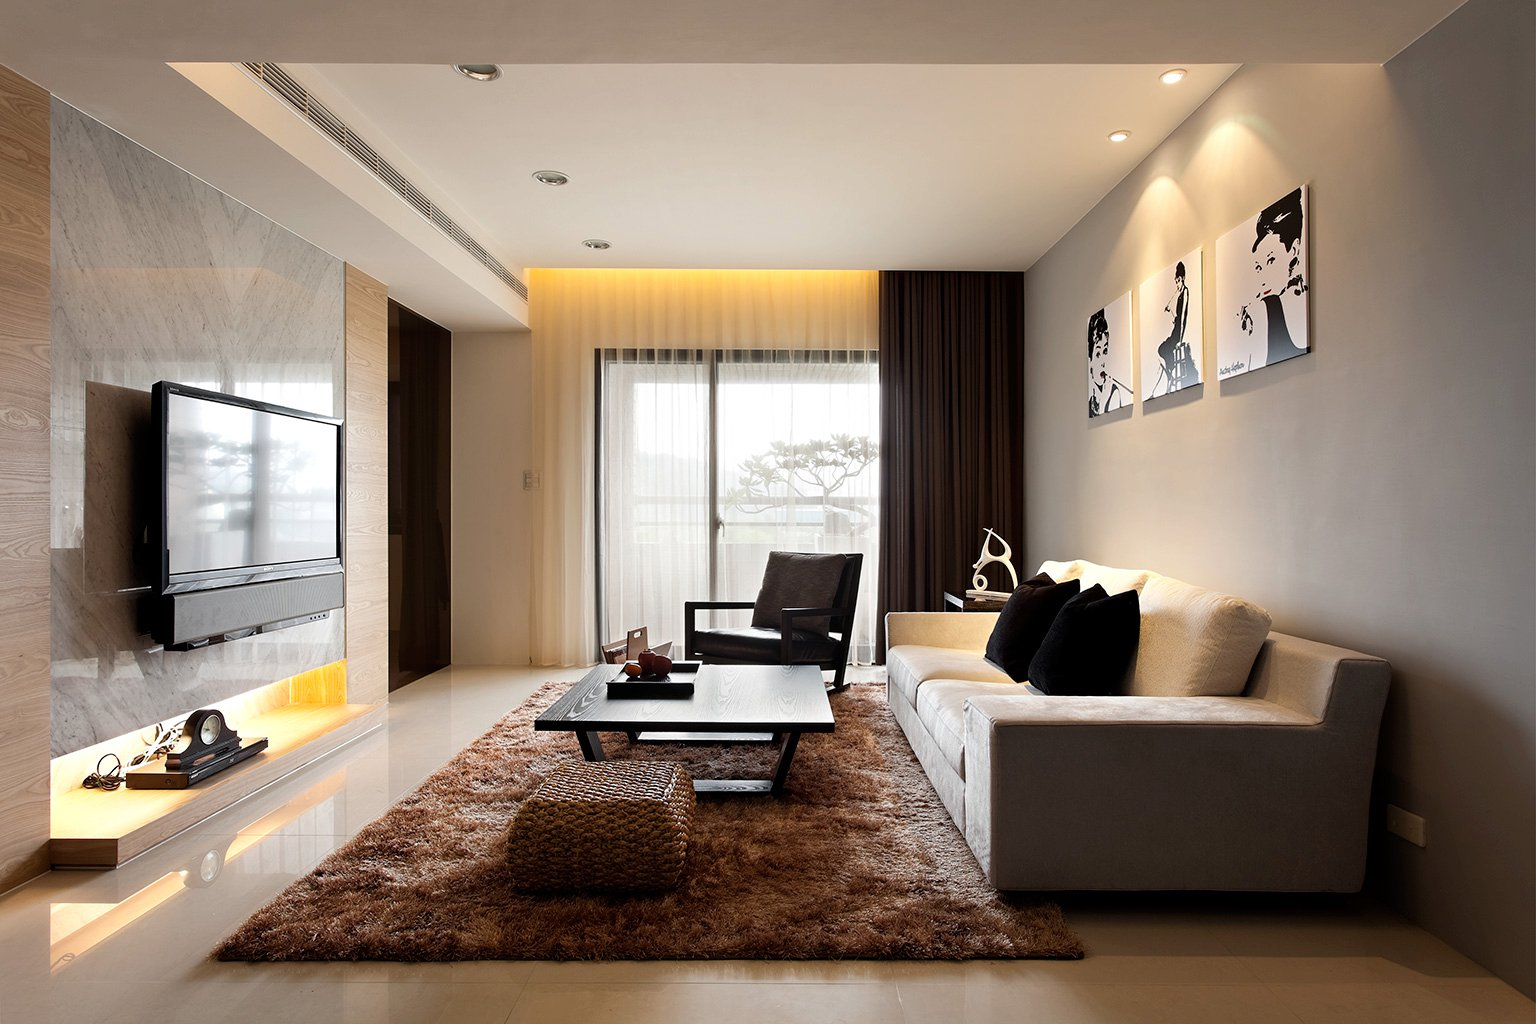 contemporary living room design 19 ideas - Room Design Ideas